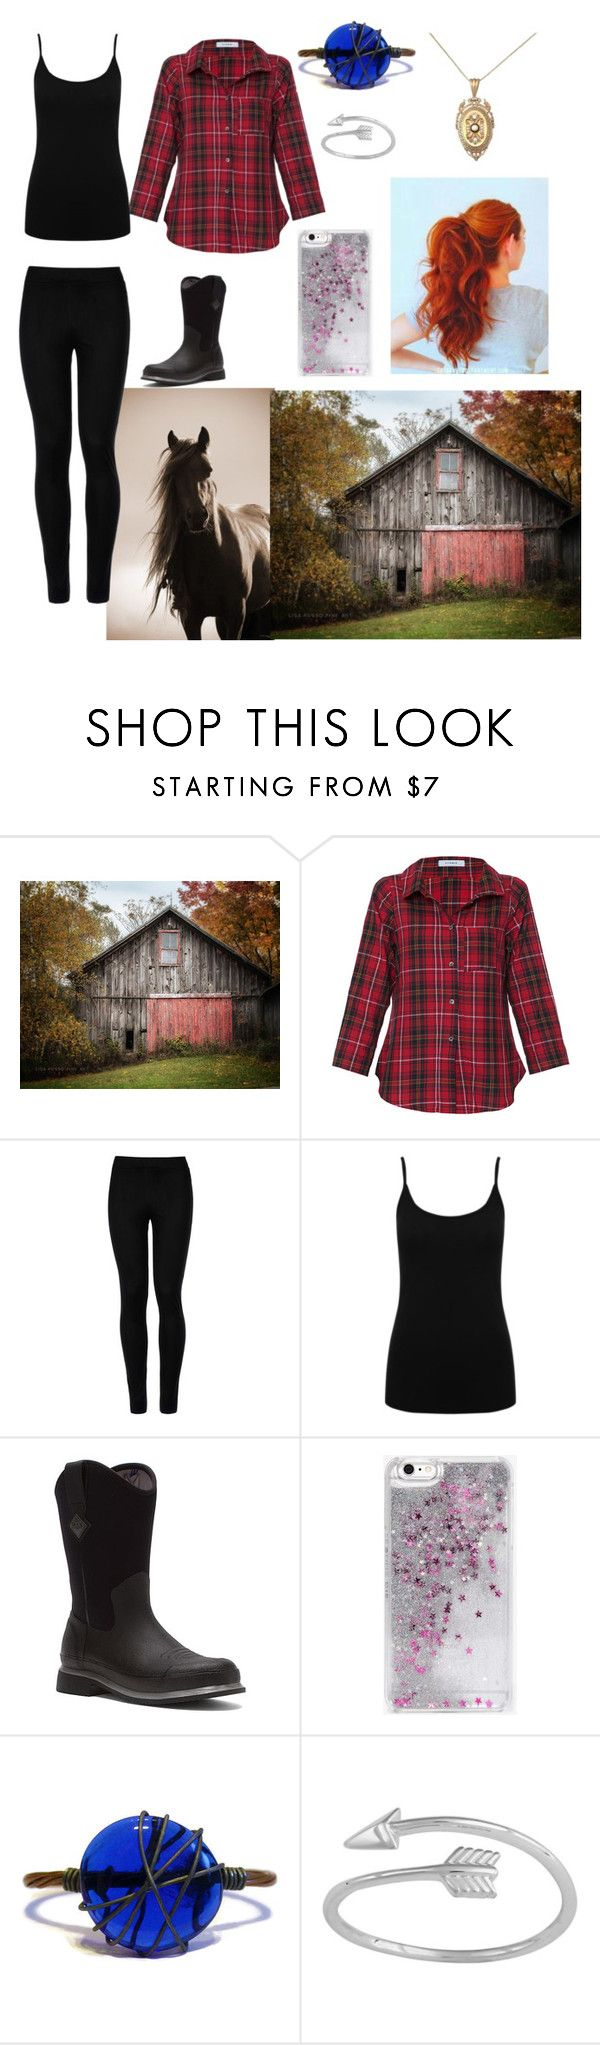 """""""Letha mucks the stalls"""" by lostgirl98 ❤ liked on Polyvore featuring Vitamin, Wolford, M&Co, The Original Muck Boot Company, Skinnydip and Midsummer Star"""